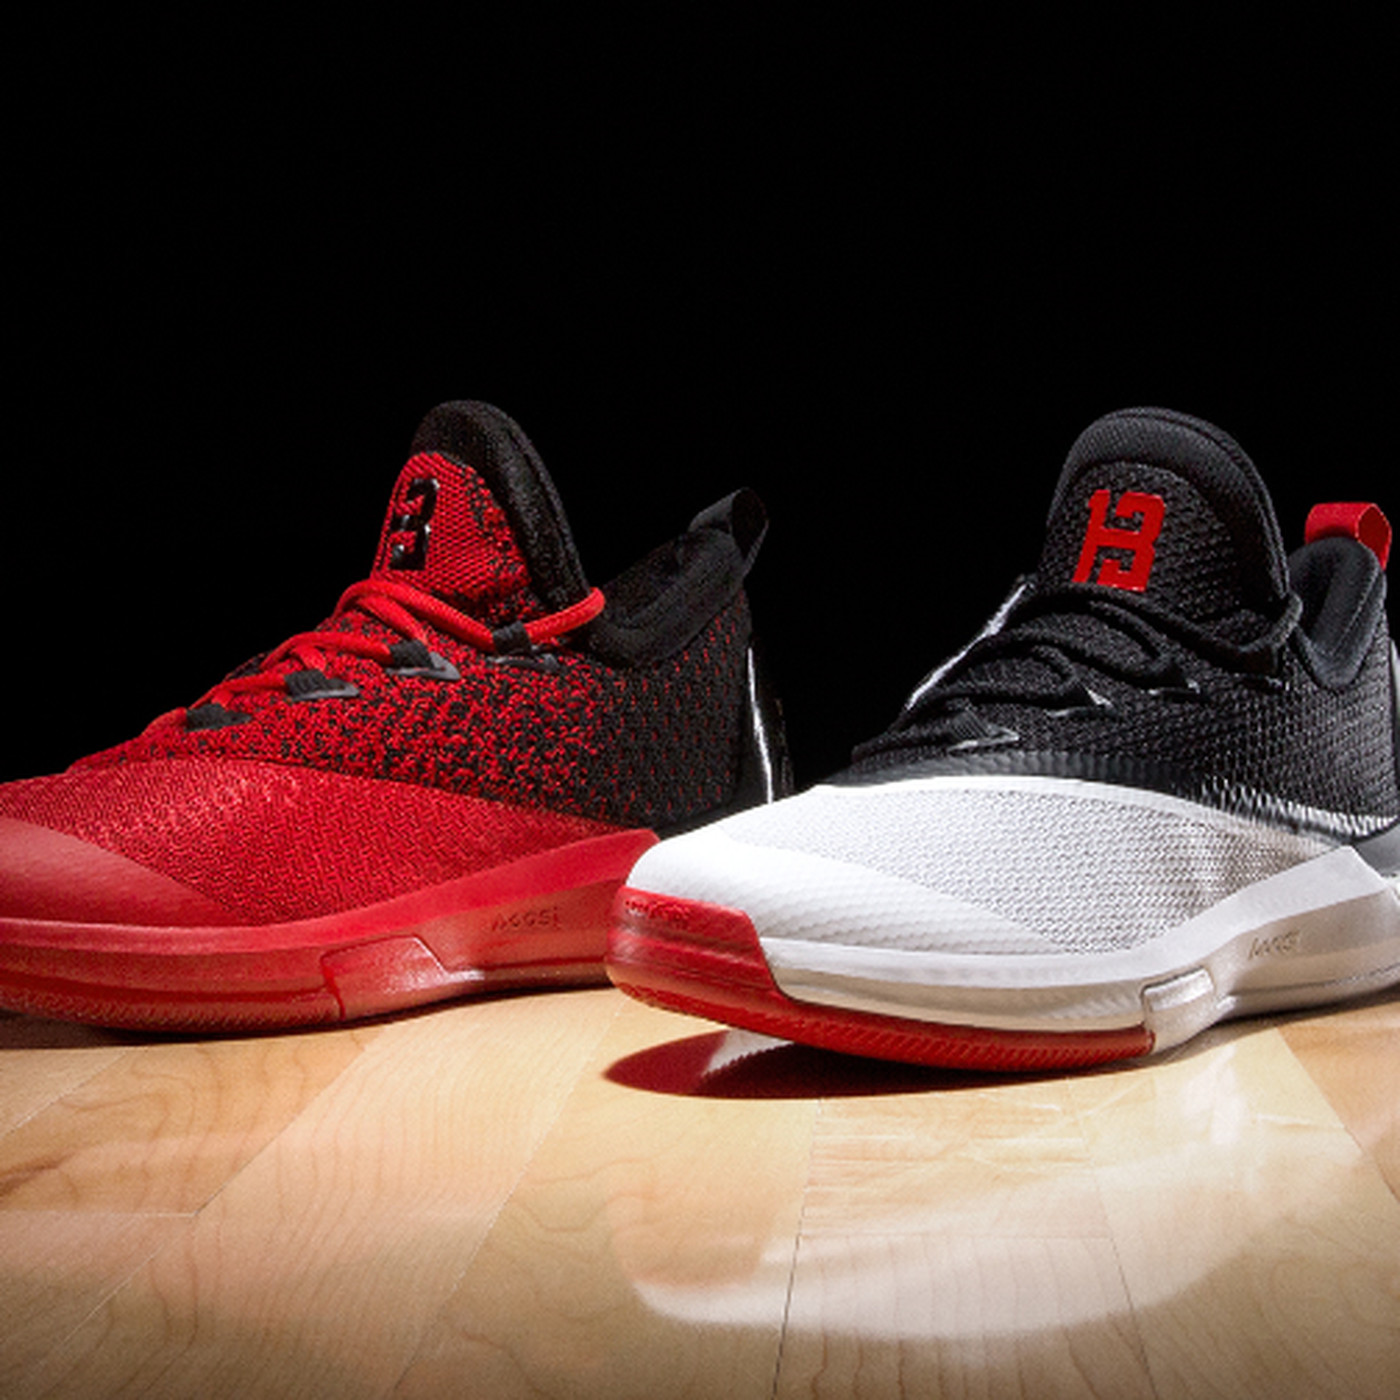 Adidas Introduces New Custom James Harden Home And Away Shoes The Dream Shake